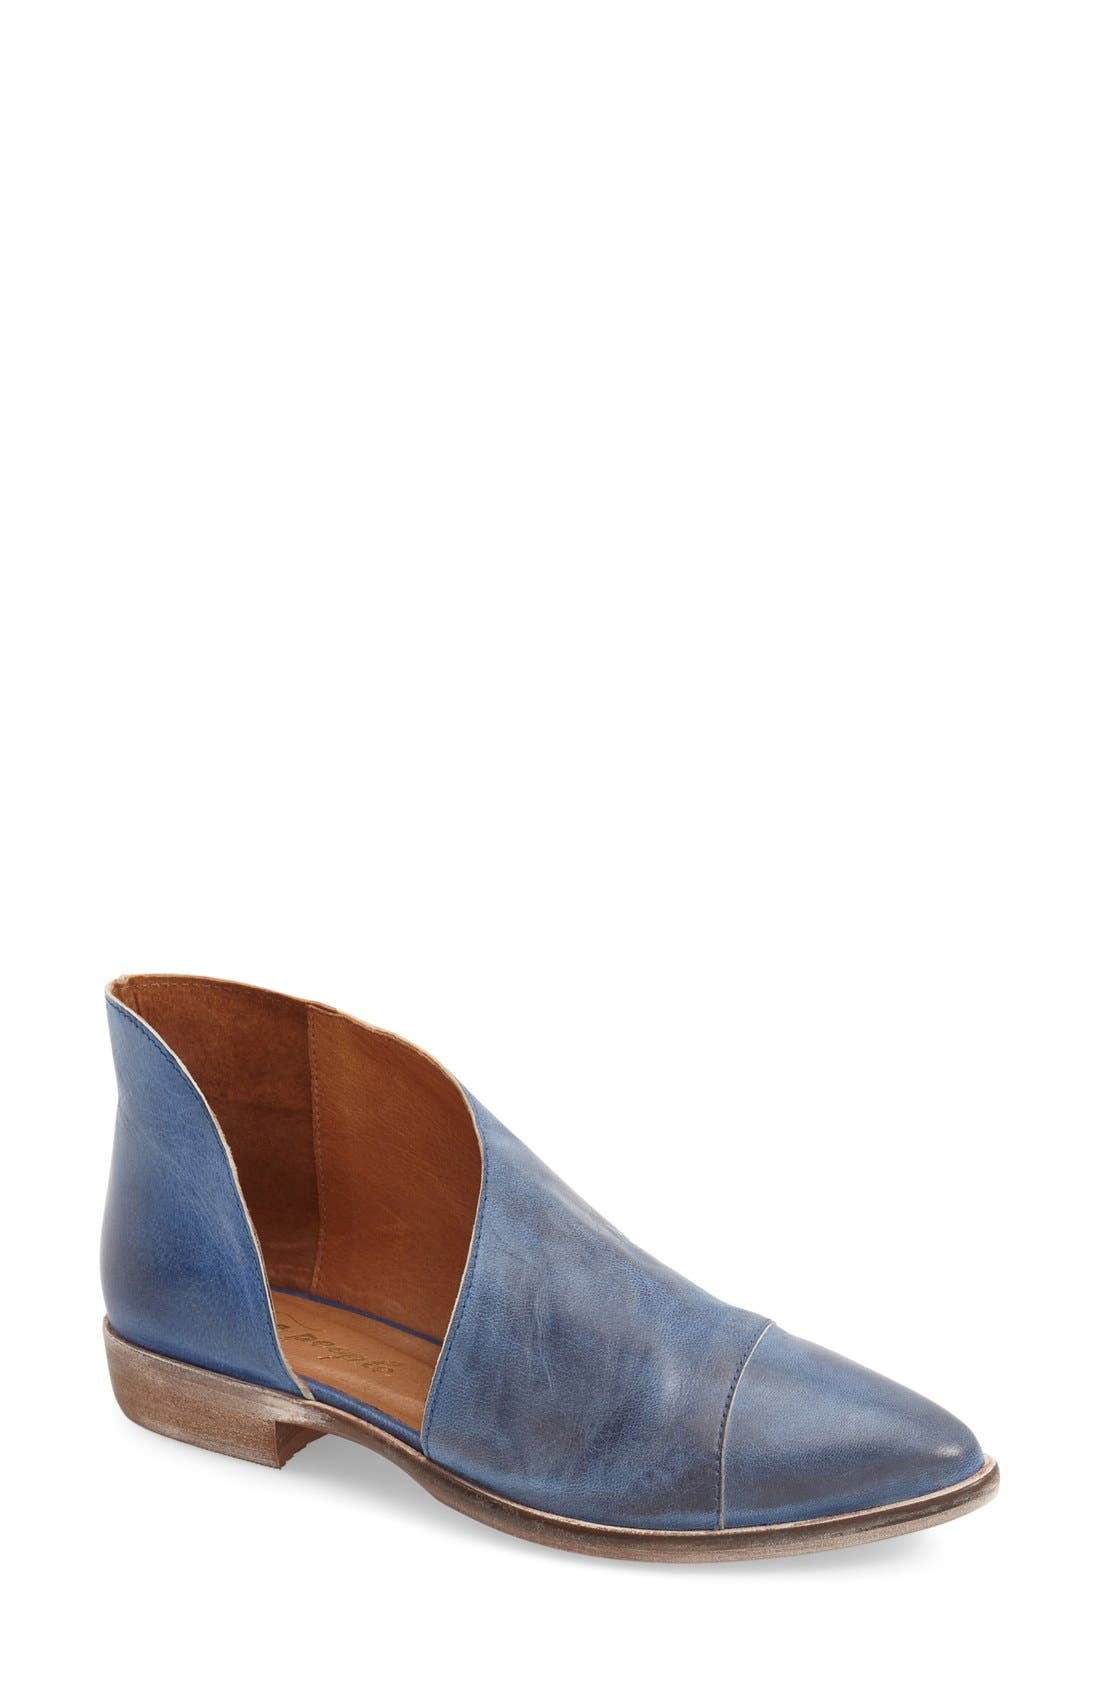 Main Image - Free People 'Royale' Pointy Toe Boot